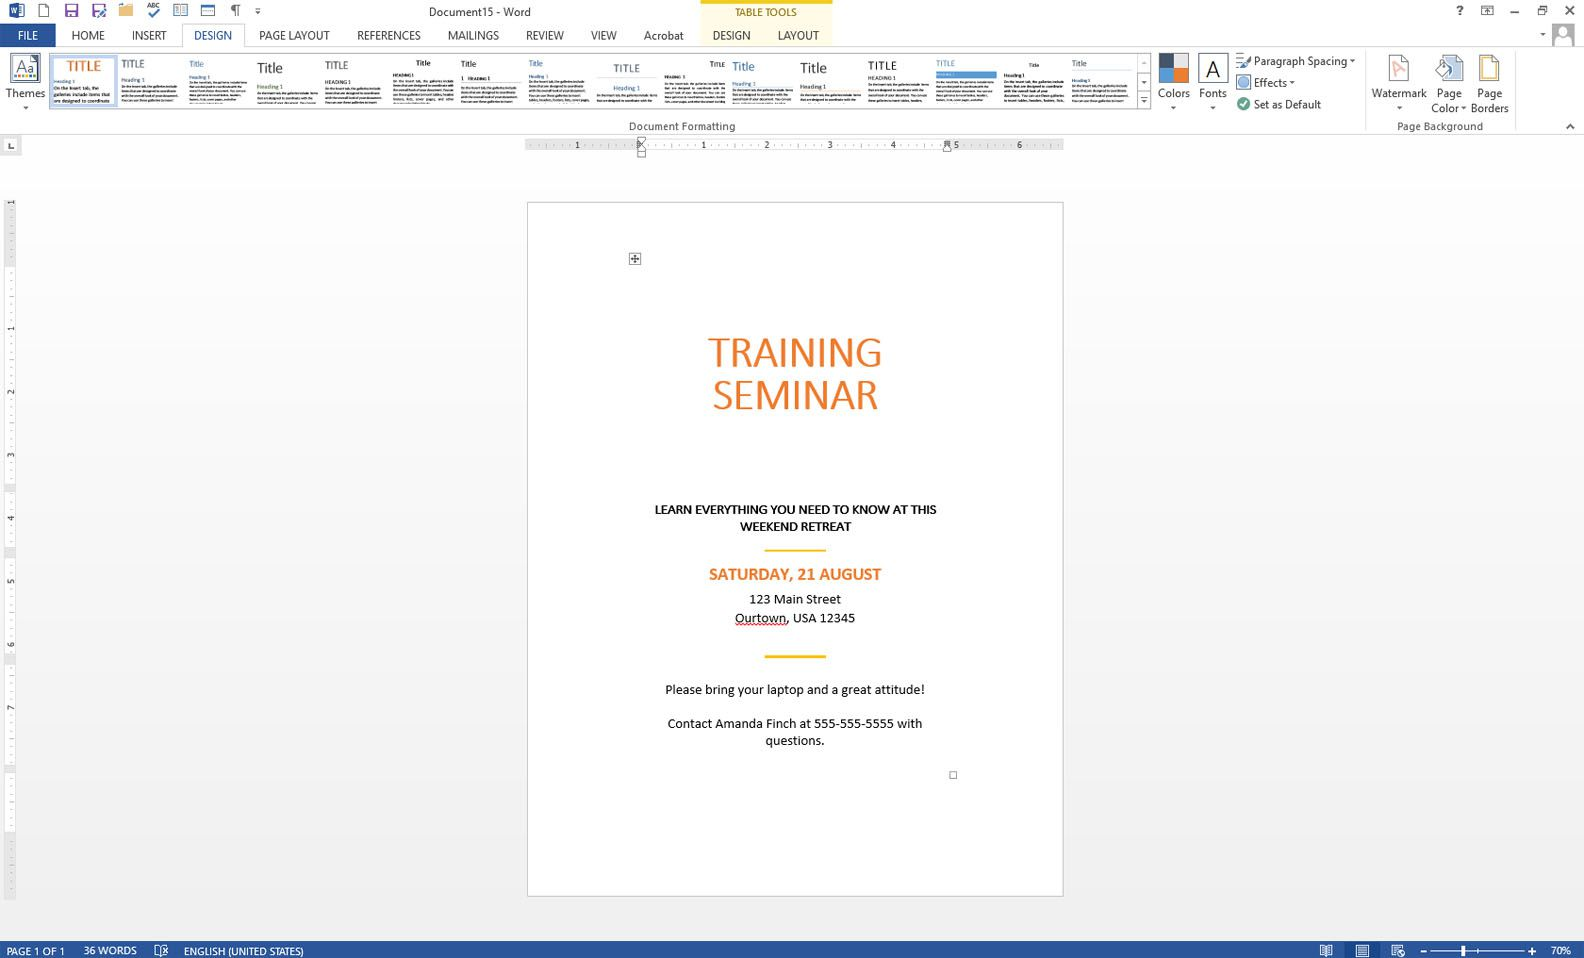 ms word apk for laptop